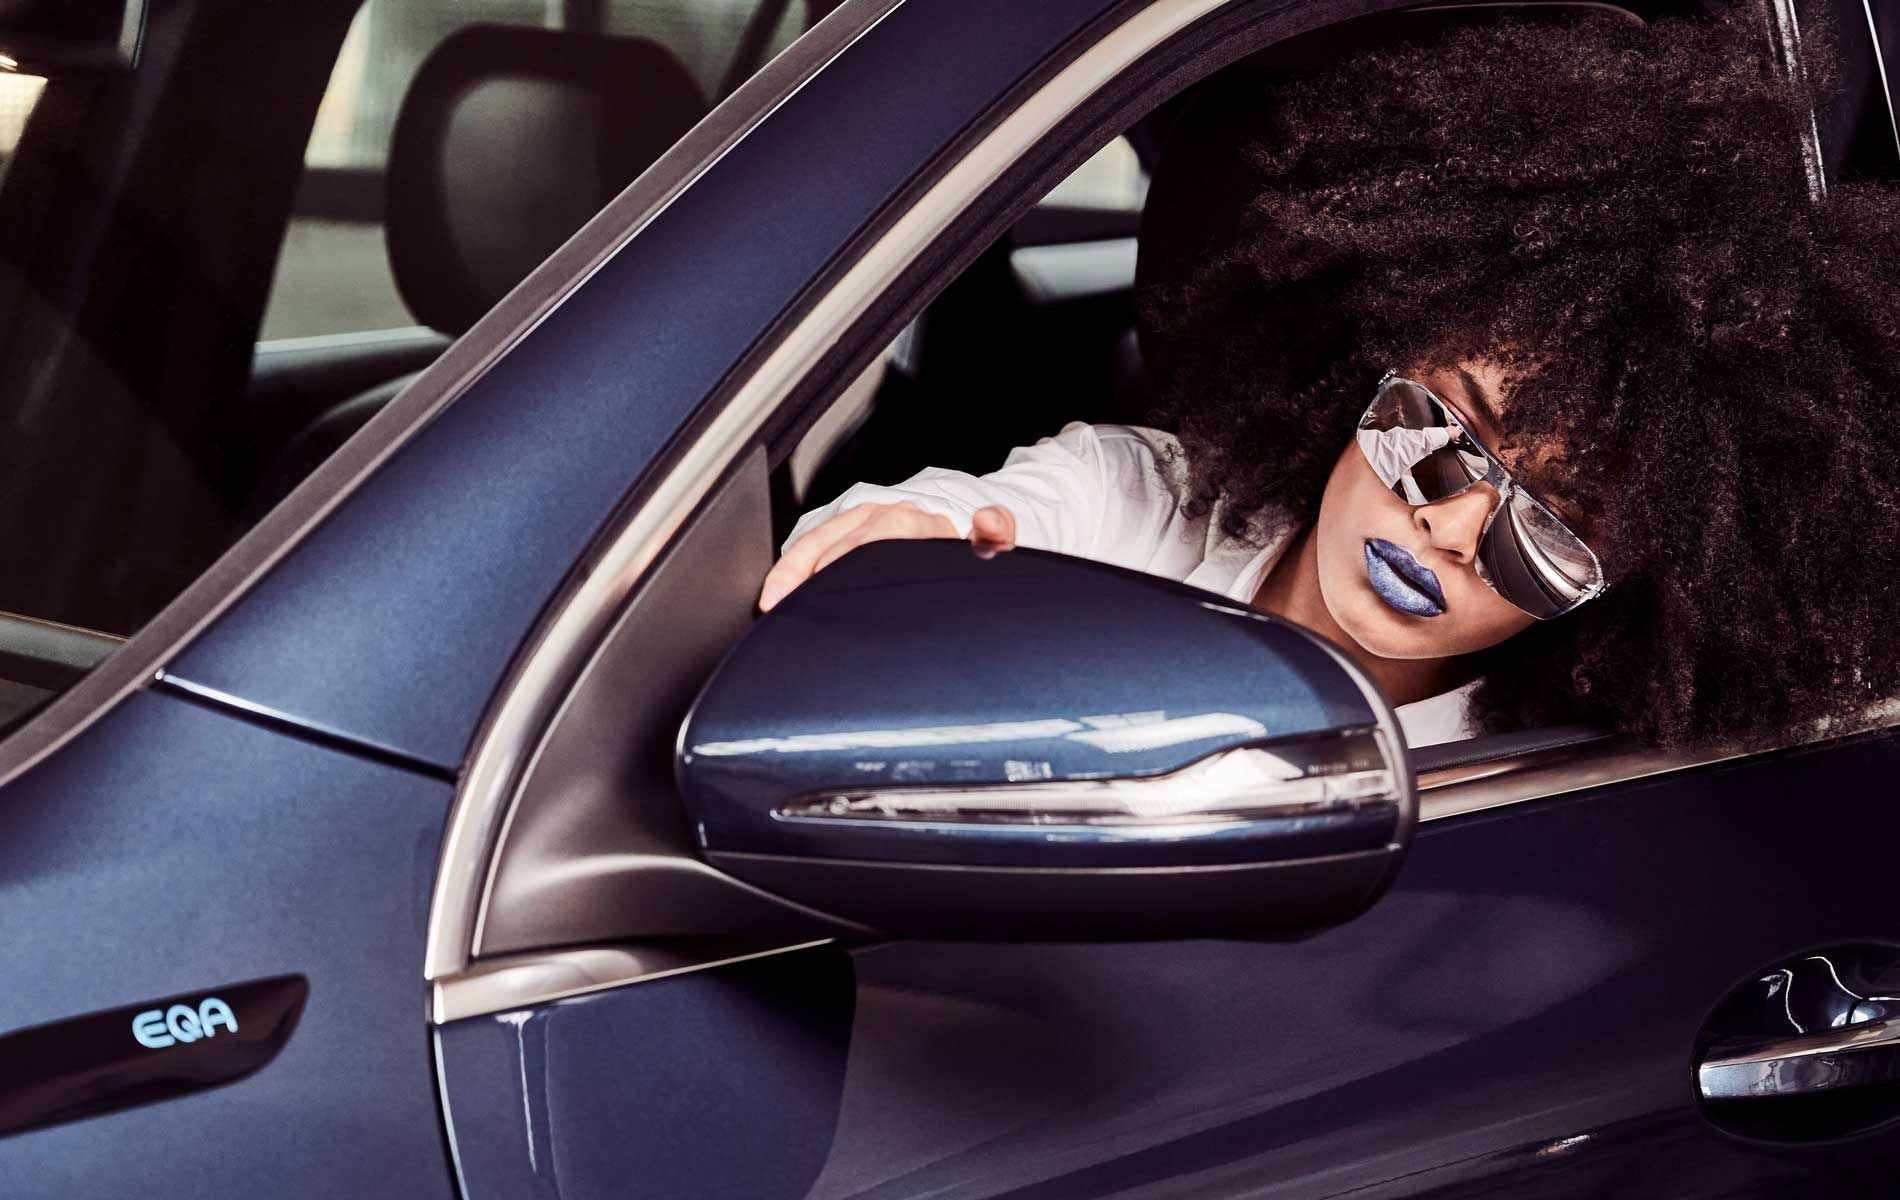 Mercedes-Benz x ic! Berlin: Stylish Sunglasses To Complement Your New Car